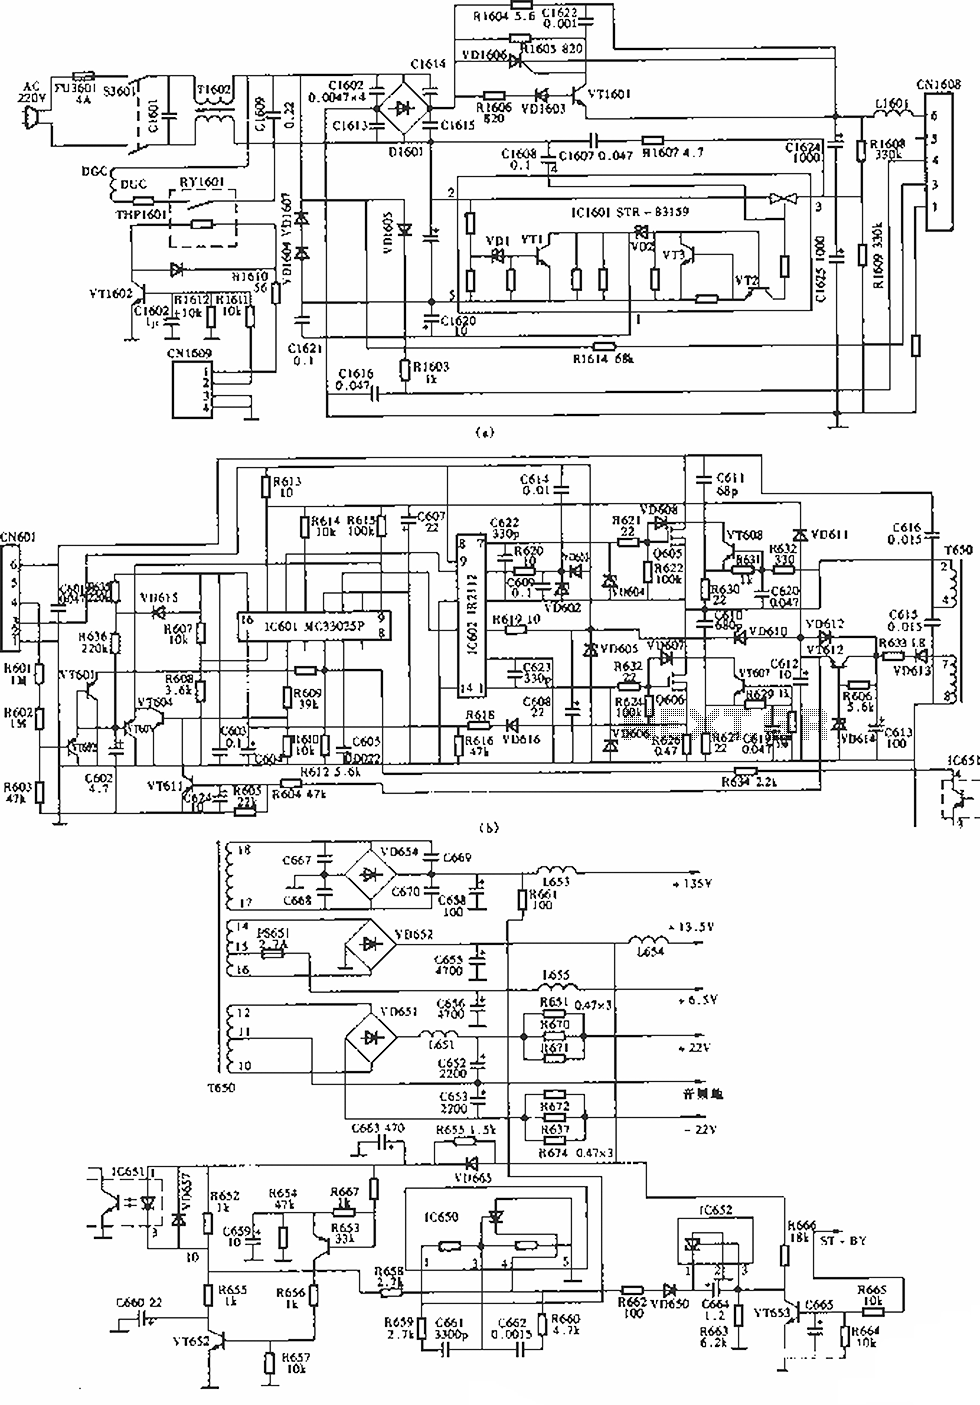 Switching Power Supply Circuits Currentlimiting With Reference Amplifier Circuit Diagram Sony Kv S29mhl Tv Sir A 80145a